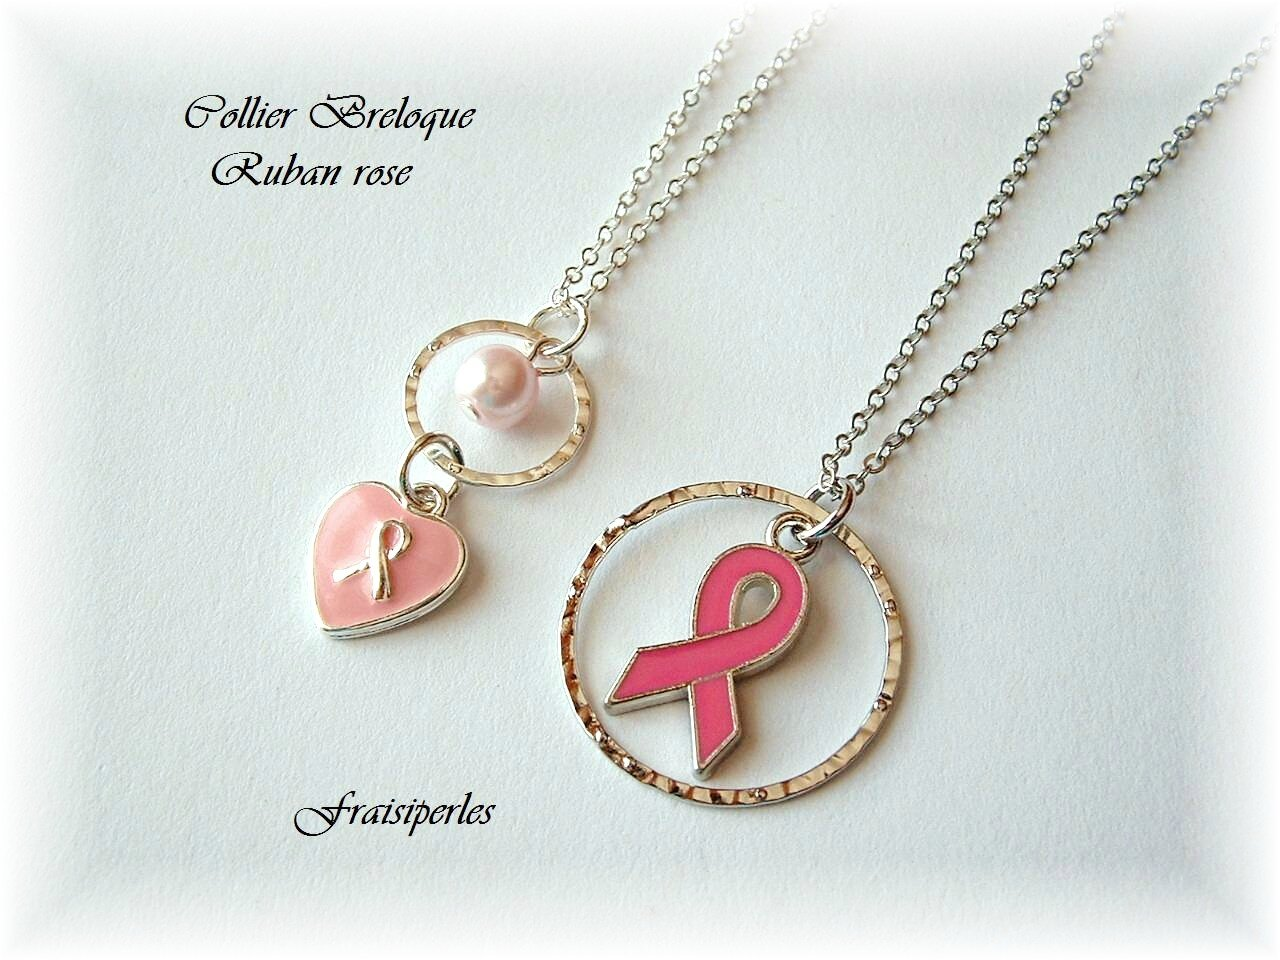 collier breloque ruban rose